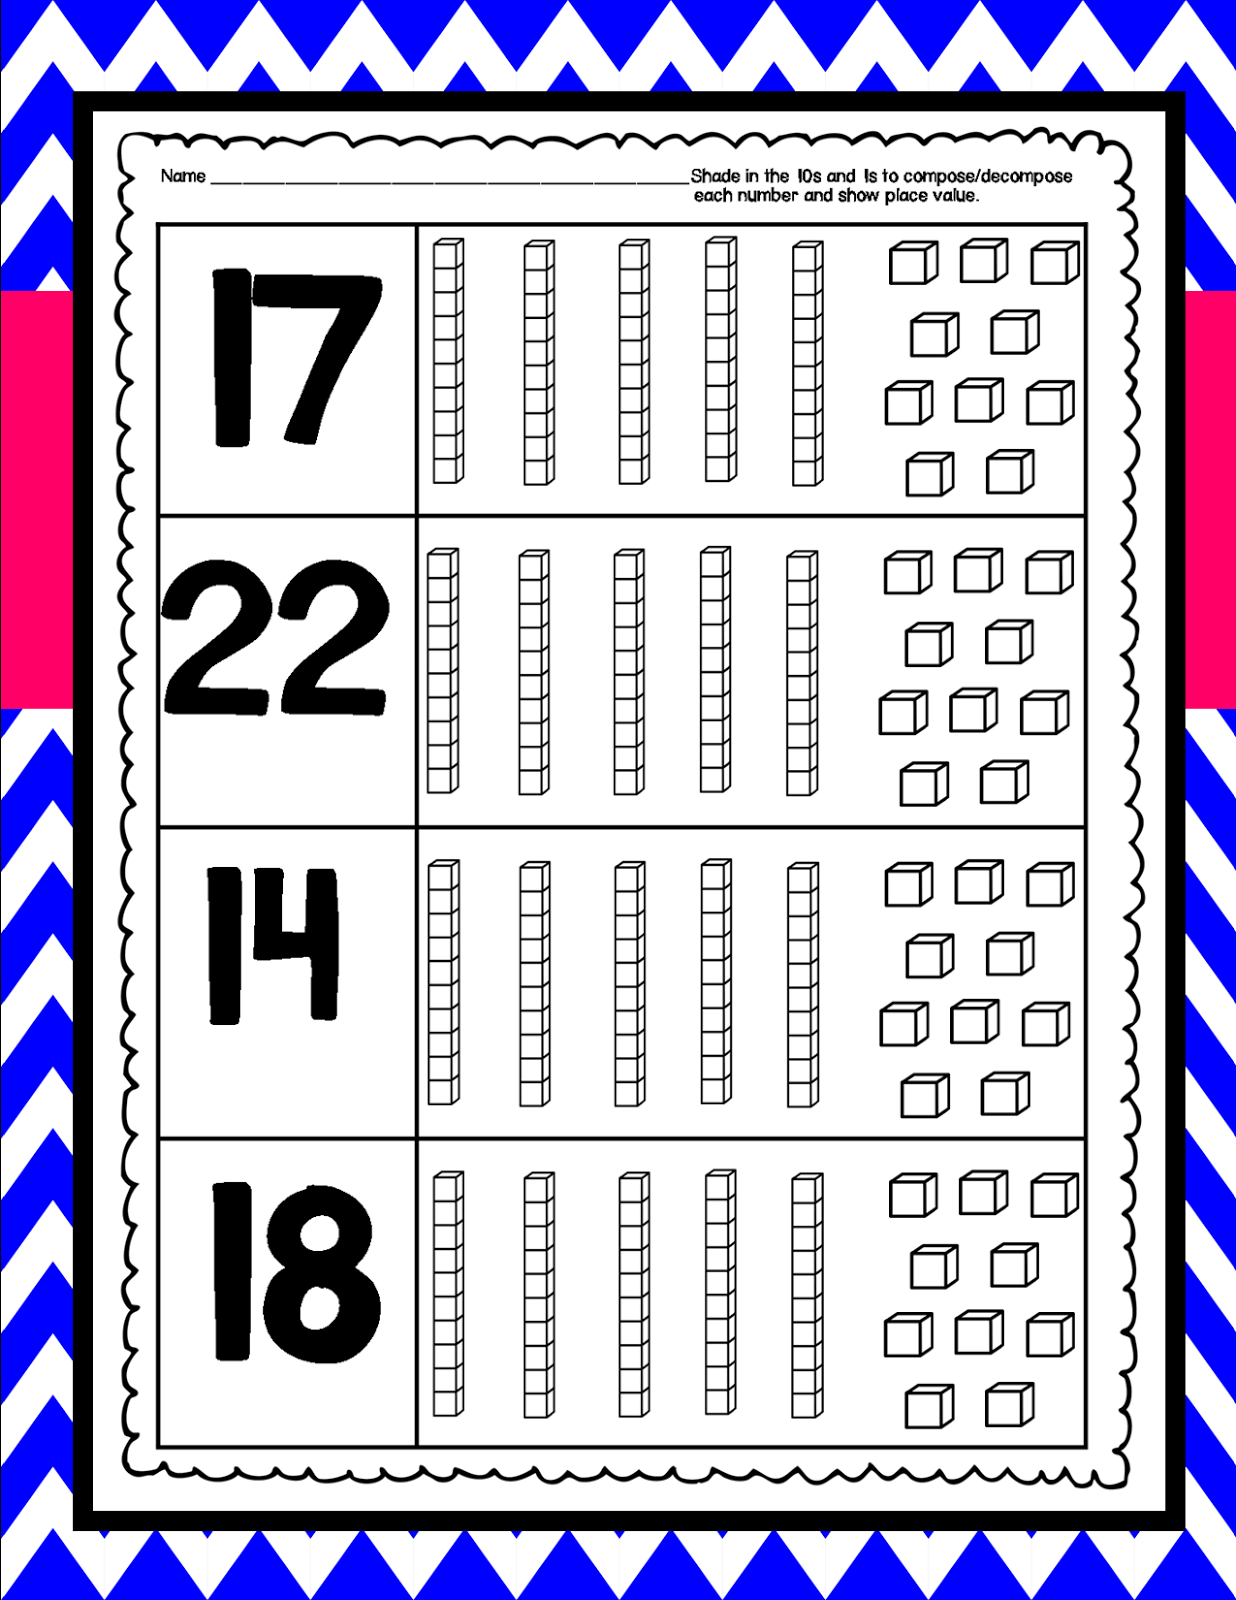 Kindergarten Squared Compose Decompose Numbers And Place